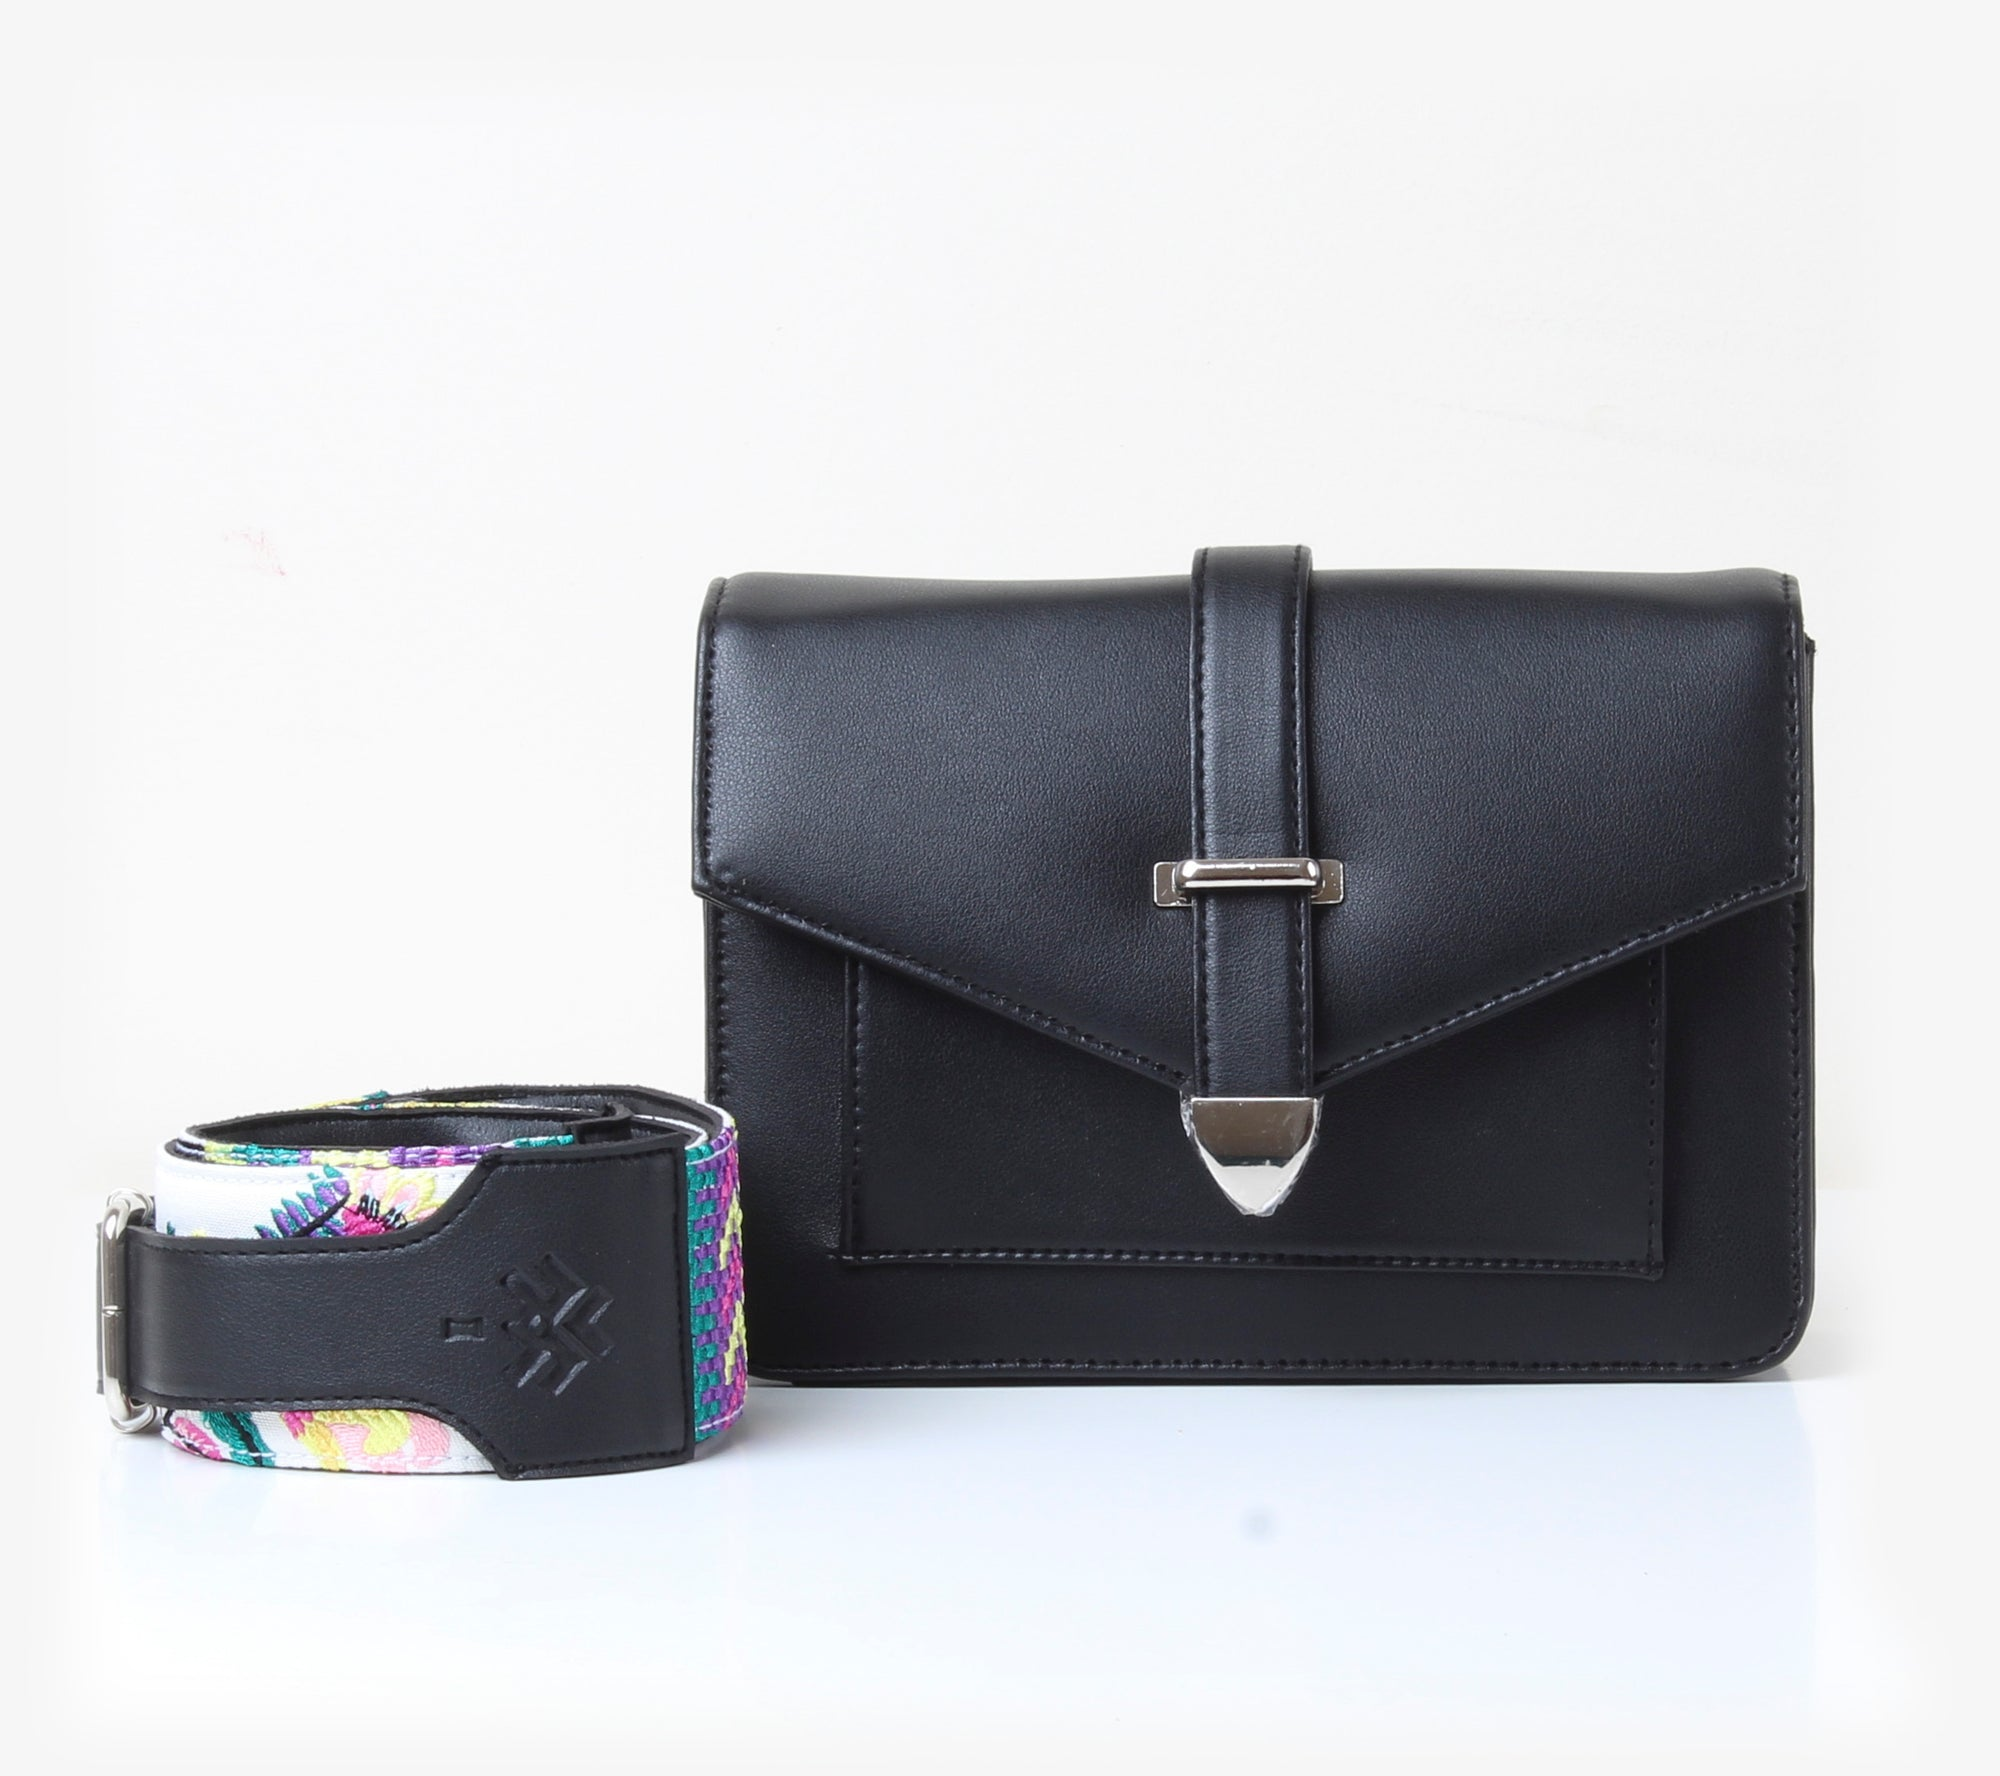 Town Cross-Bag Patterned Black